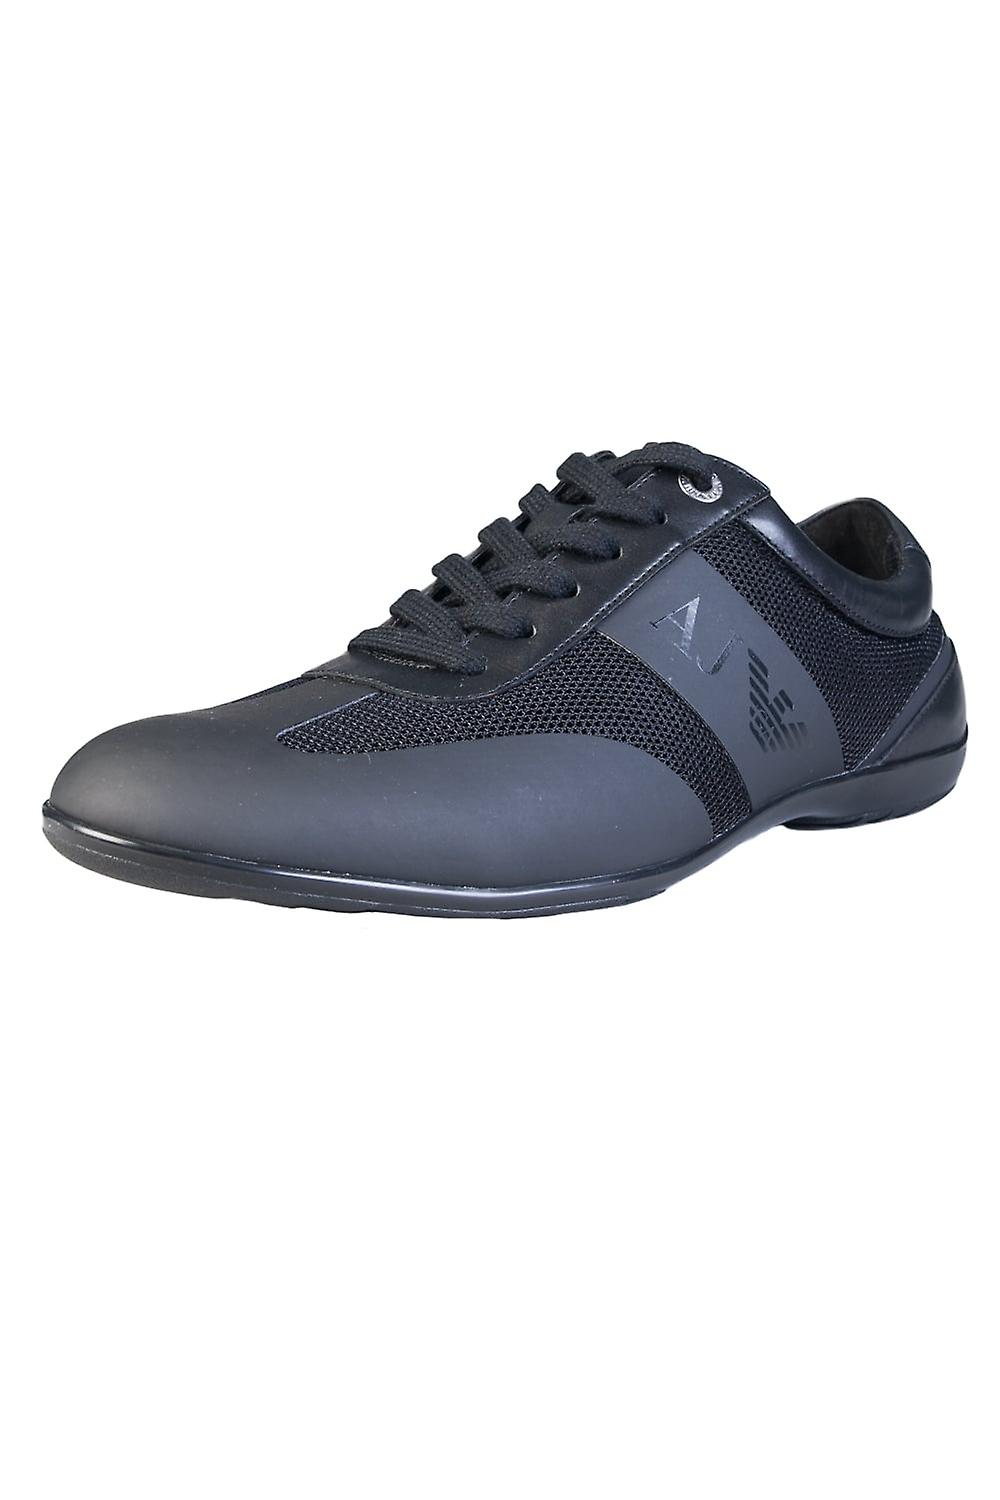 Armani Jeans Lace-up Trainers 935534 CC508